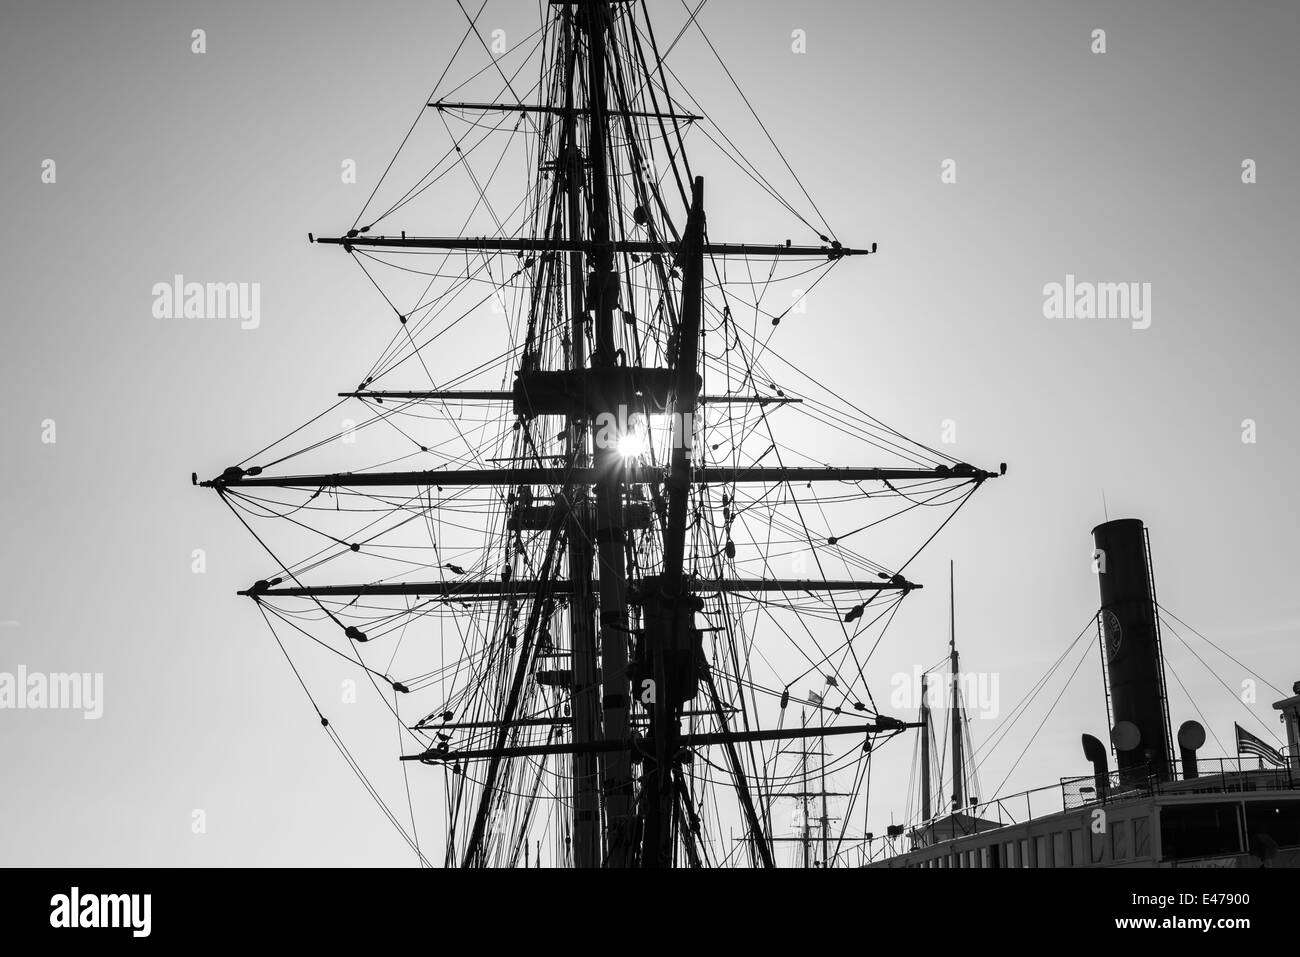 A ship's mast and rigging against the setting Sun. San Diego, California, United States. - Stock Image